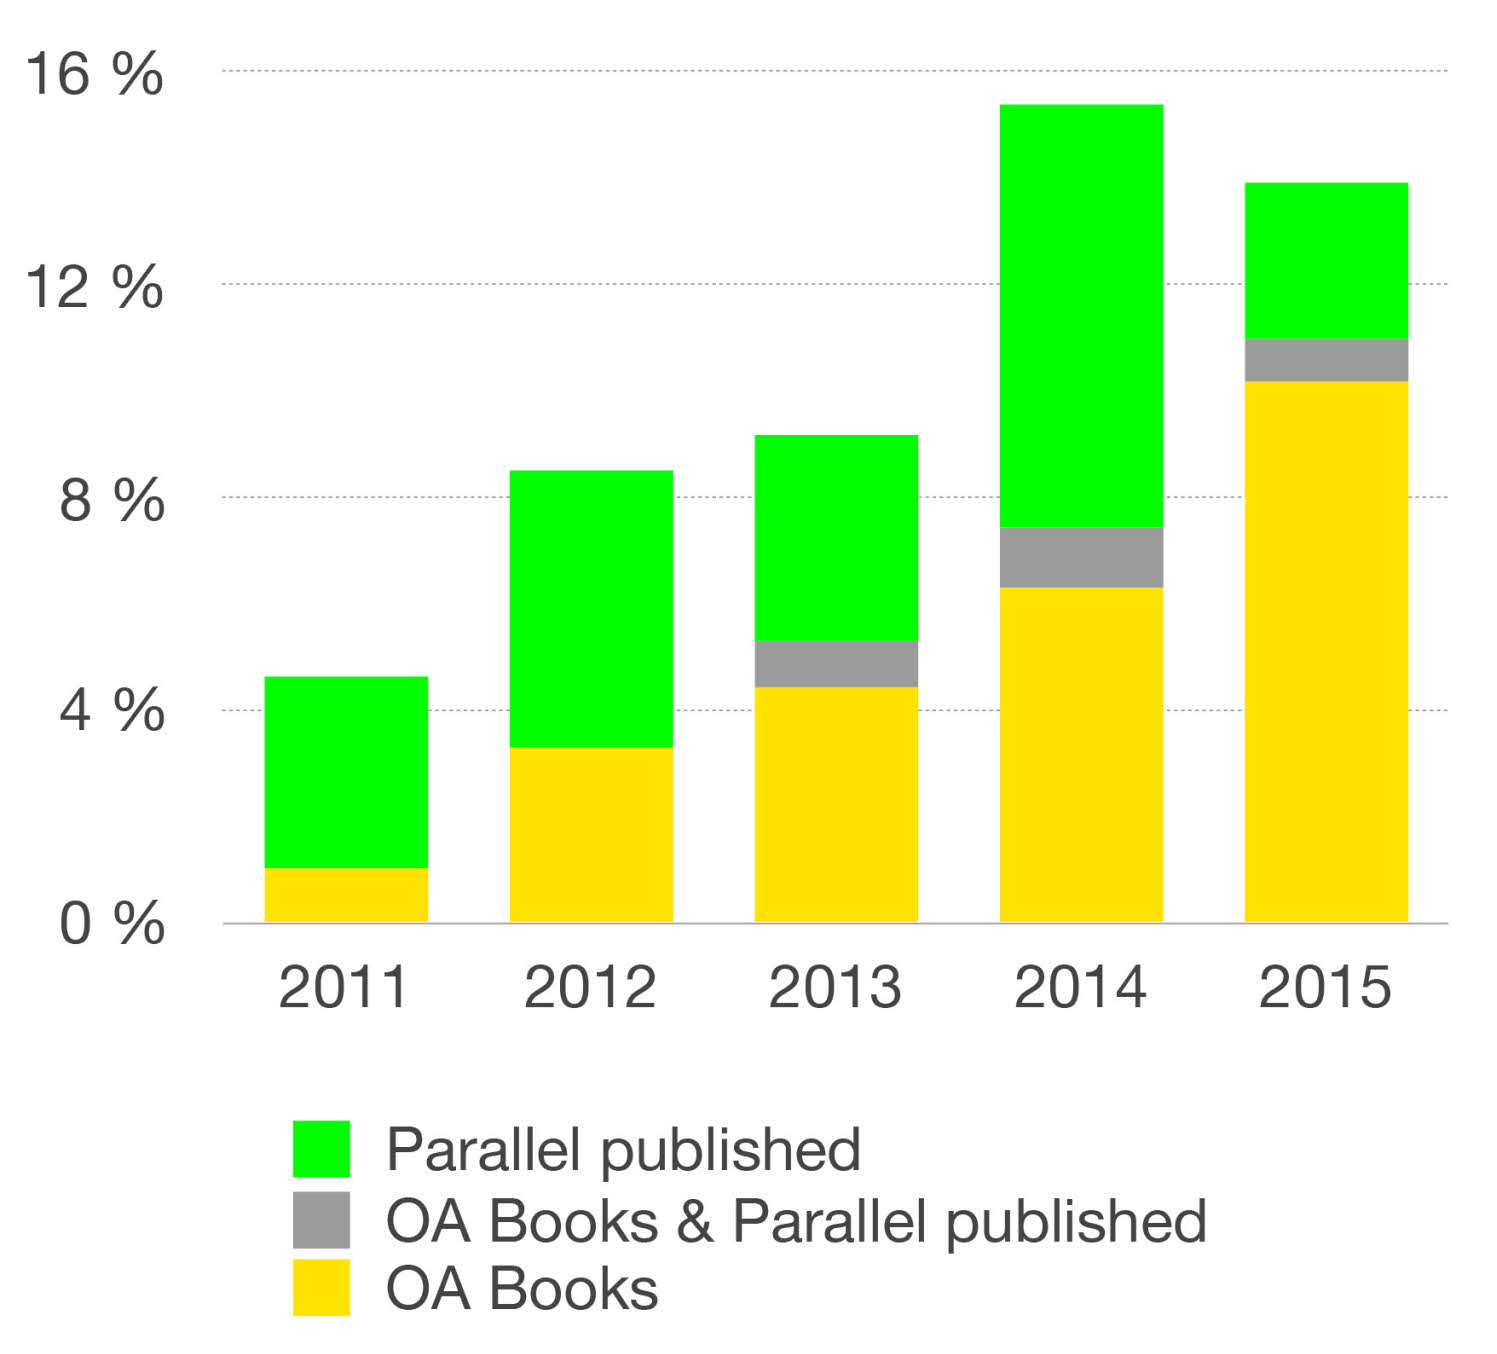 Bar chart showing percentage Open Access of scientific chapters in DiVA, years 2011-2015